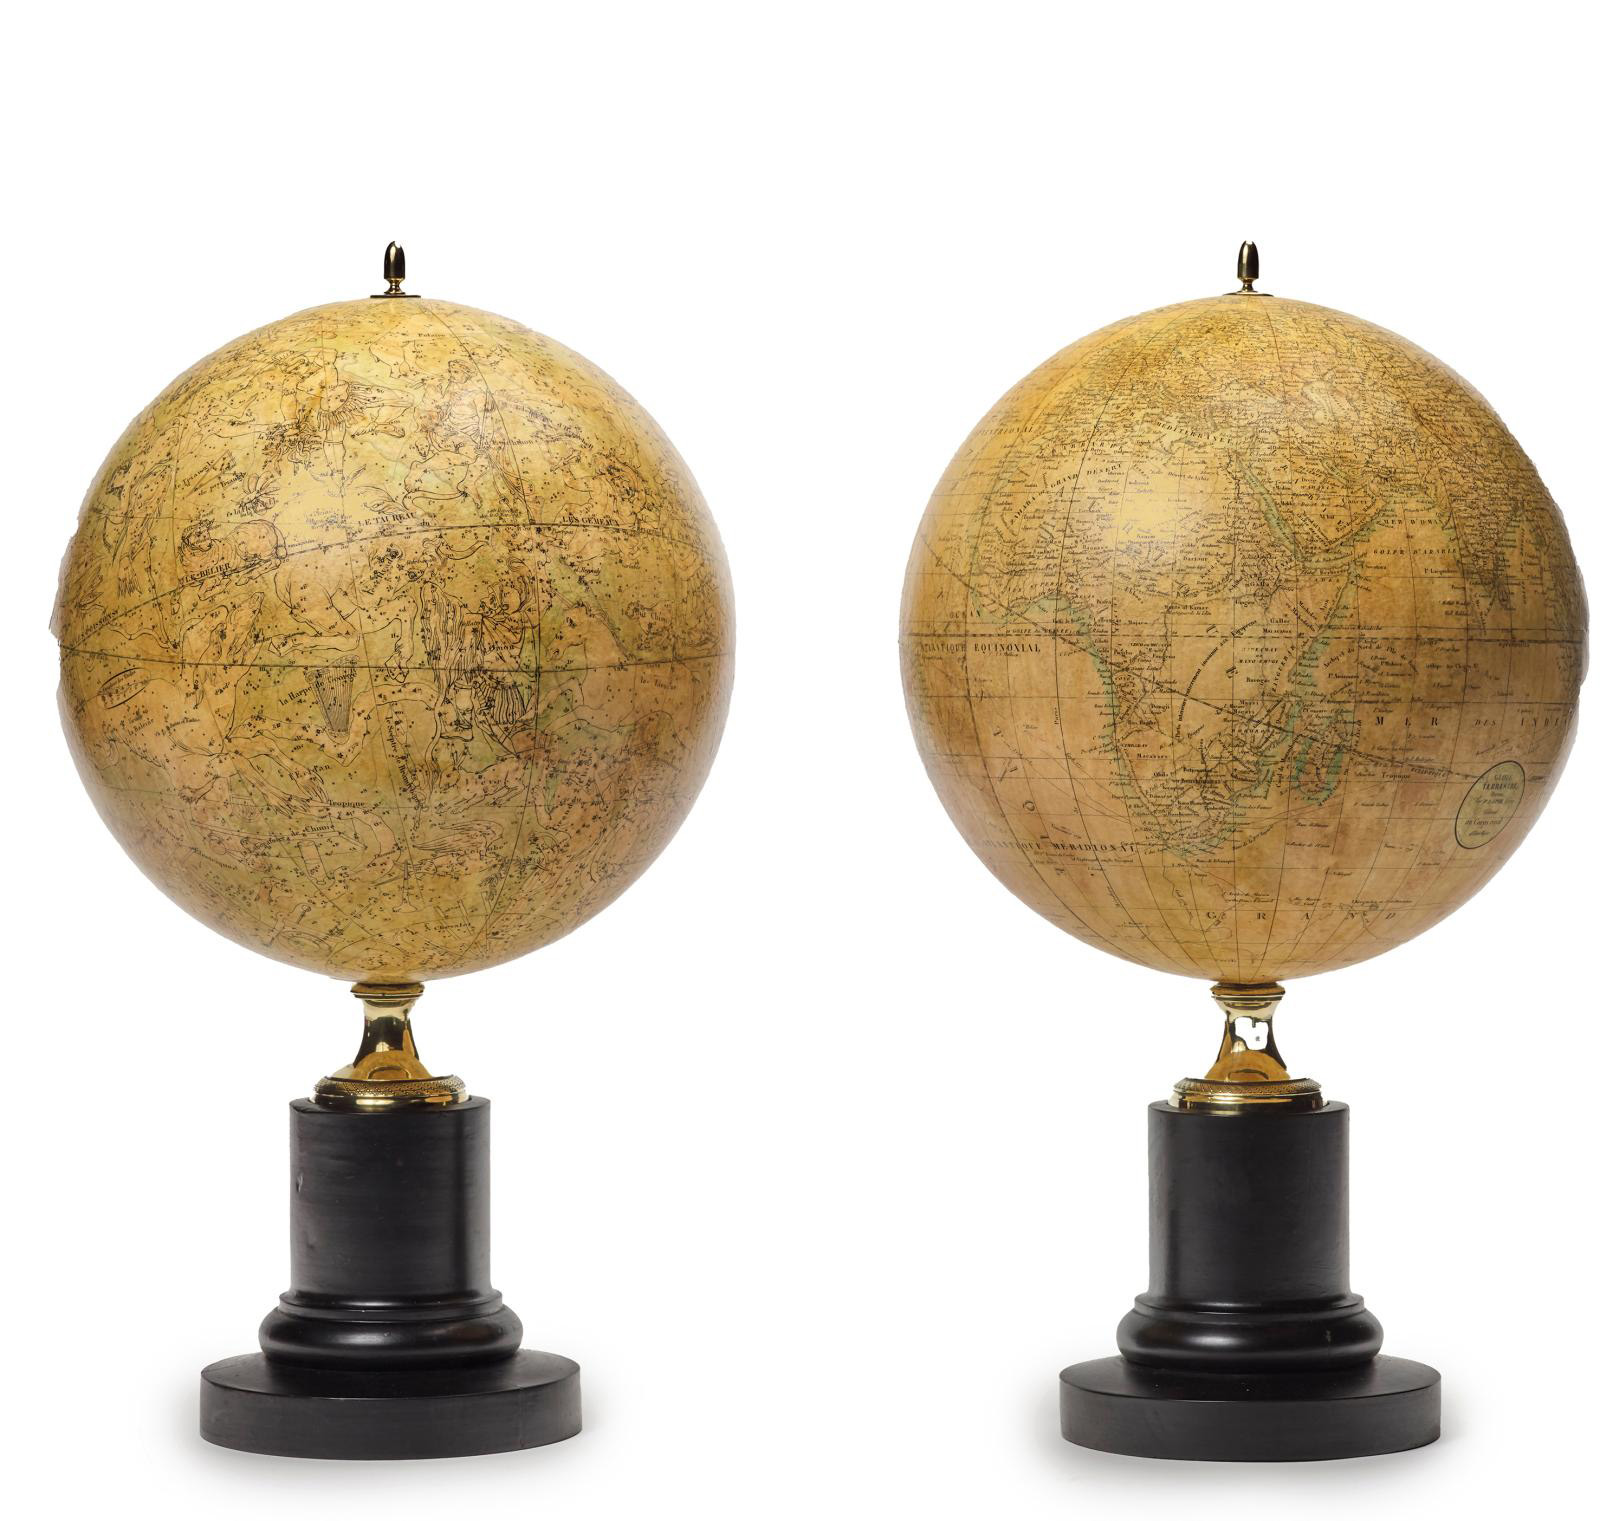 Pair of terrestrial and celestial globes by geographers P. Lapie and A. Freimin, Paris, edited by Bastien the Elder, standing on a darkene